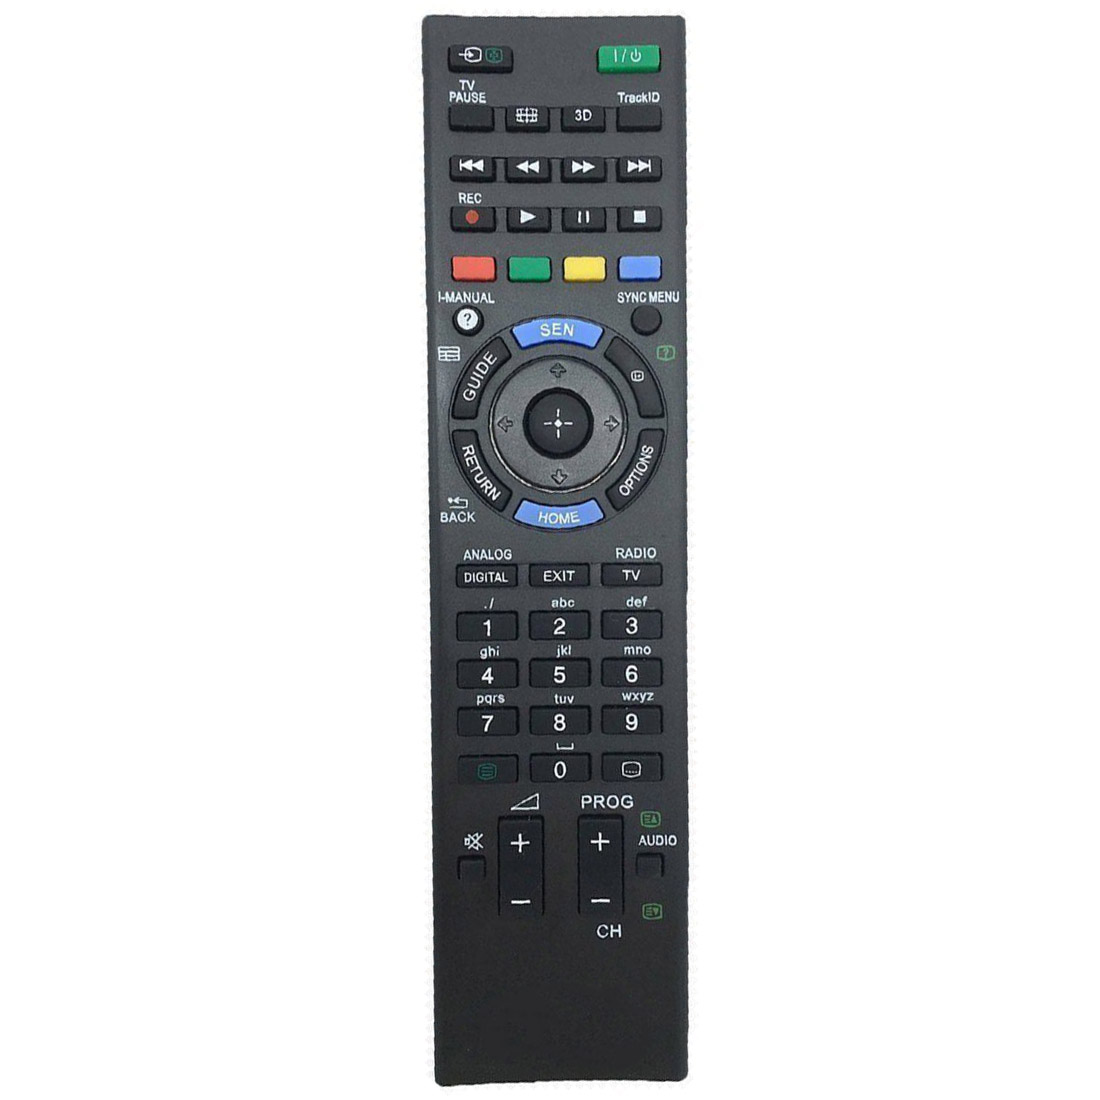 New Remote Control RM-ED047 For SONY Bravia TV KDL-40HX750 KDL-46HX850 chunghop rm l7 multifunctional learning remote control silver